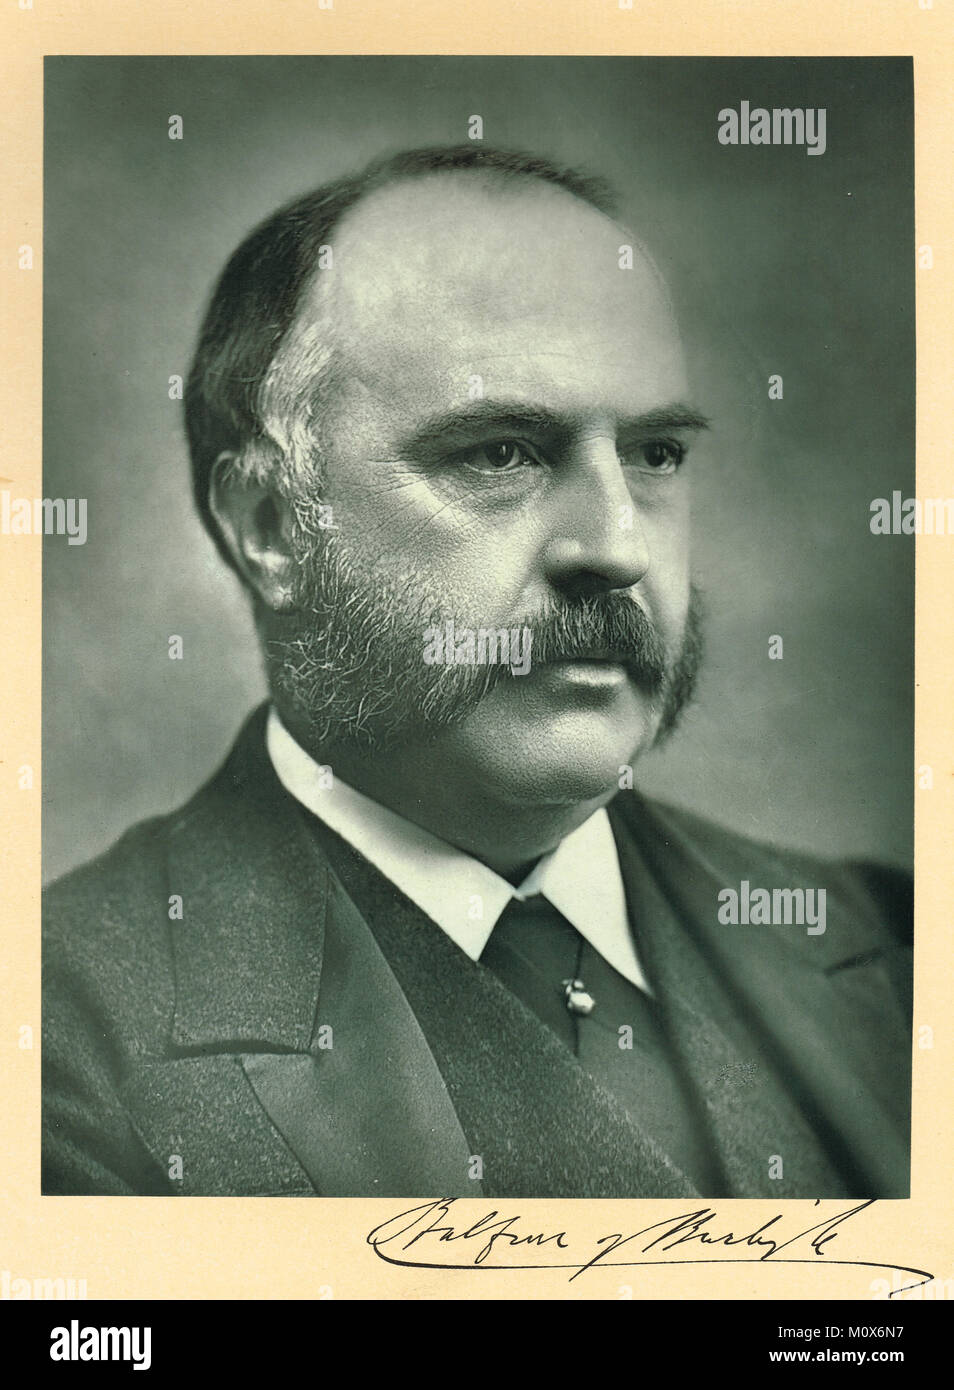 Alexander Bruce, 6th Lord Balfour of Burleigh, 1849-1921 - Stock Image